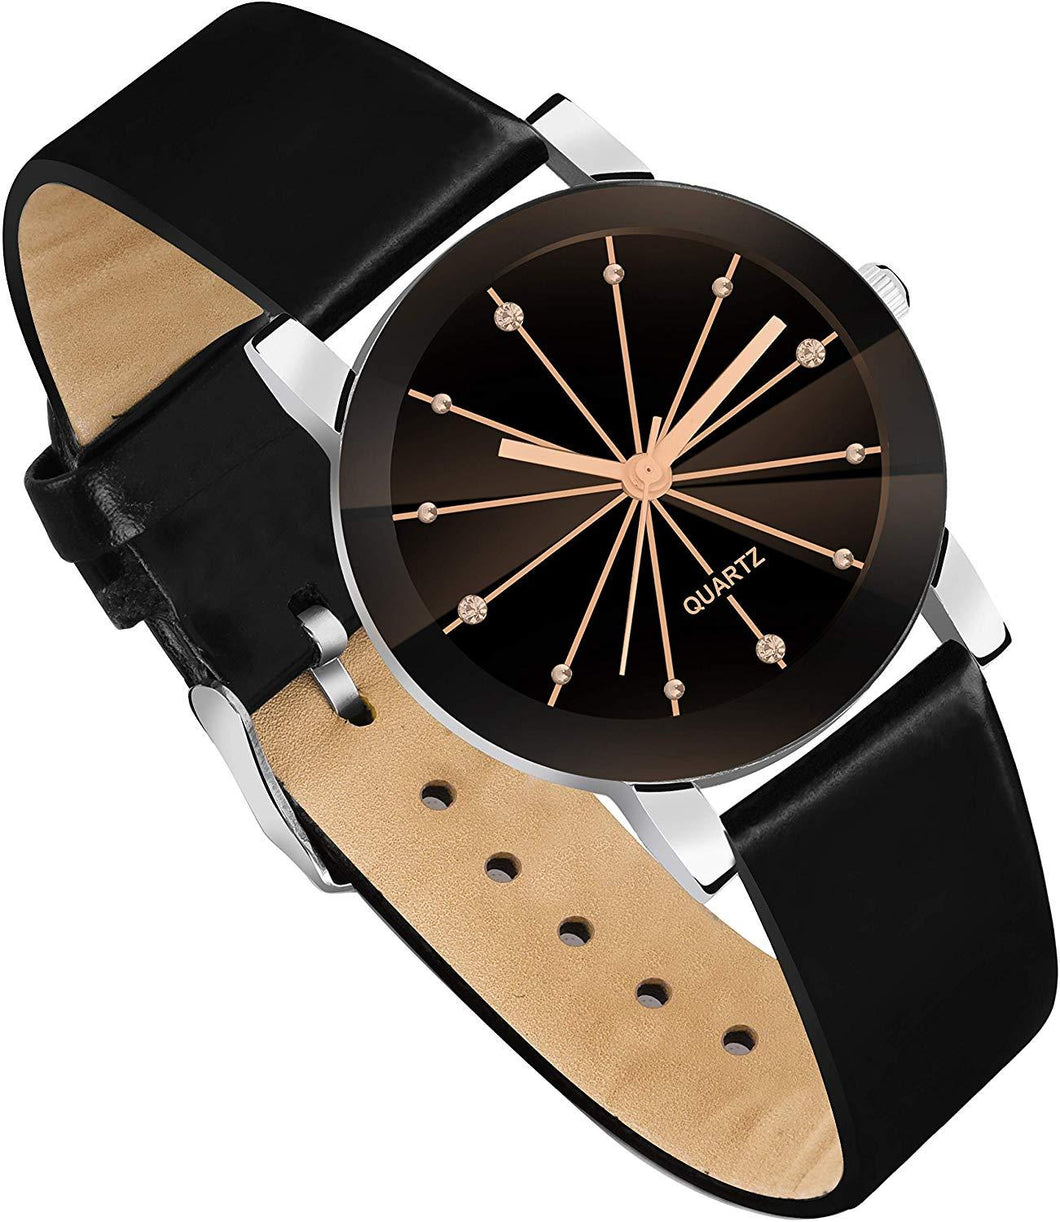 Trending Style Best Quality Prism Glass Design for Women and Girls Analog Watch